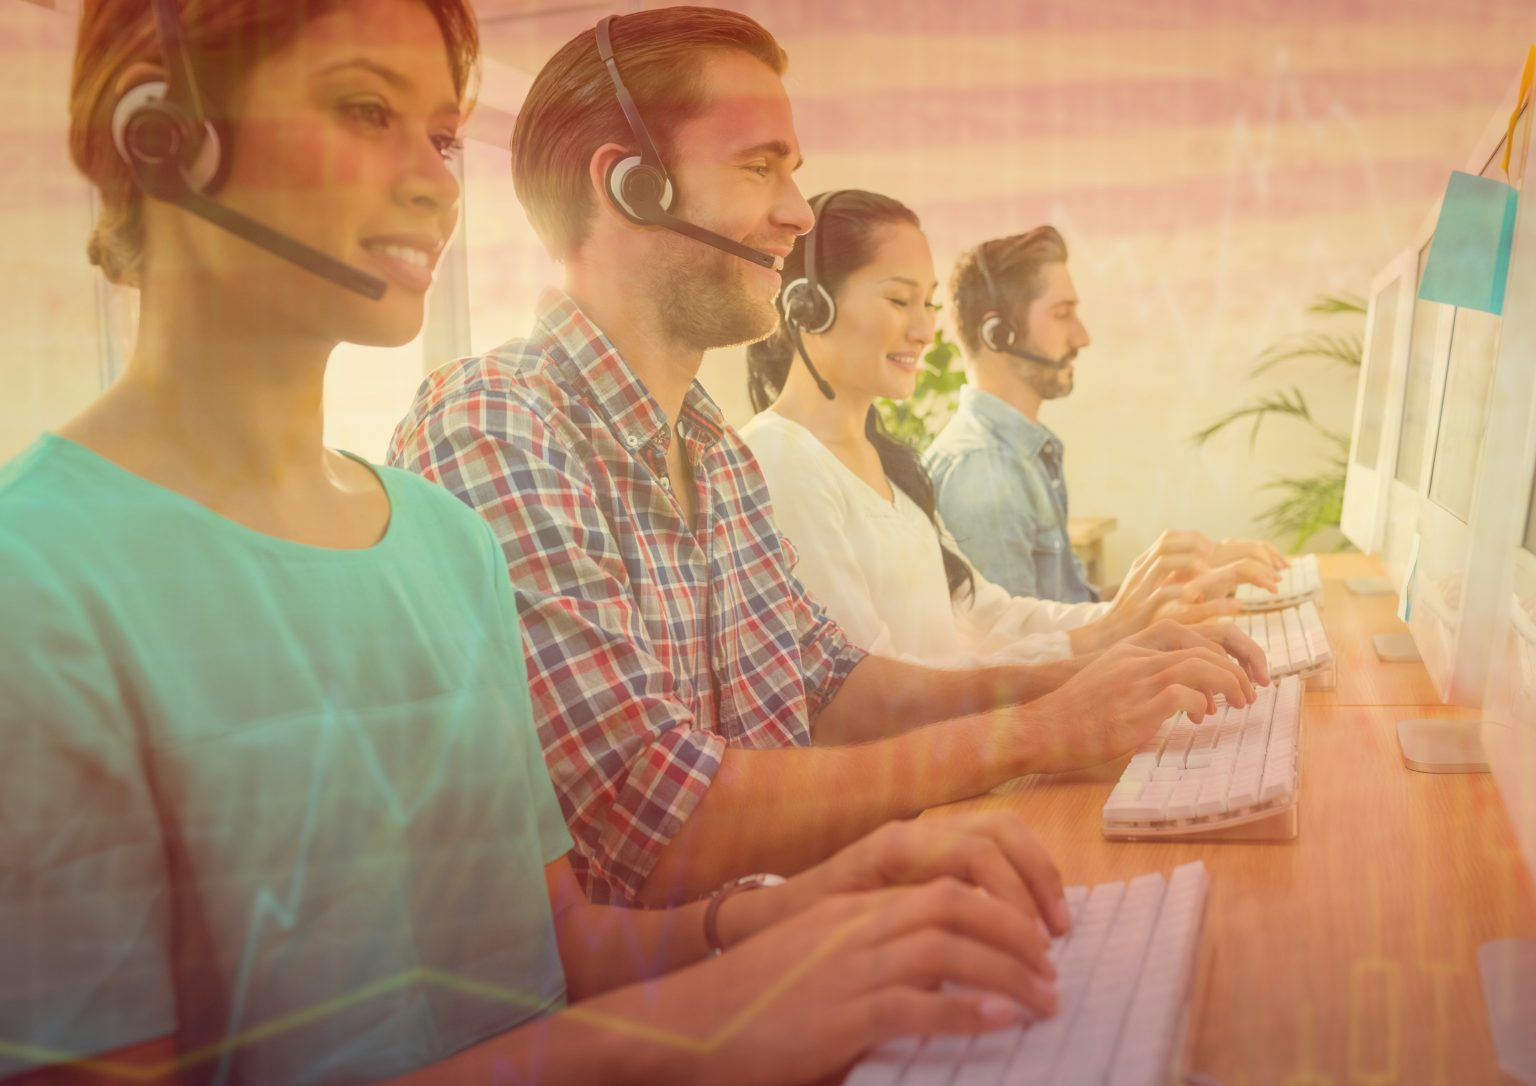 Customer service agents and providers assisting and solving customers' concerns and problems